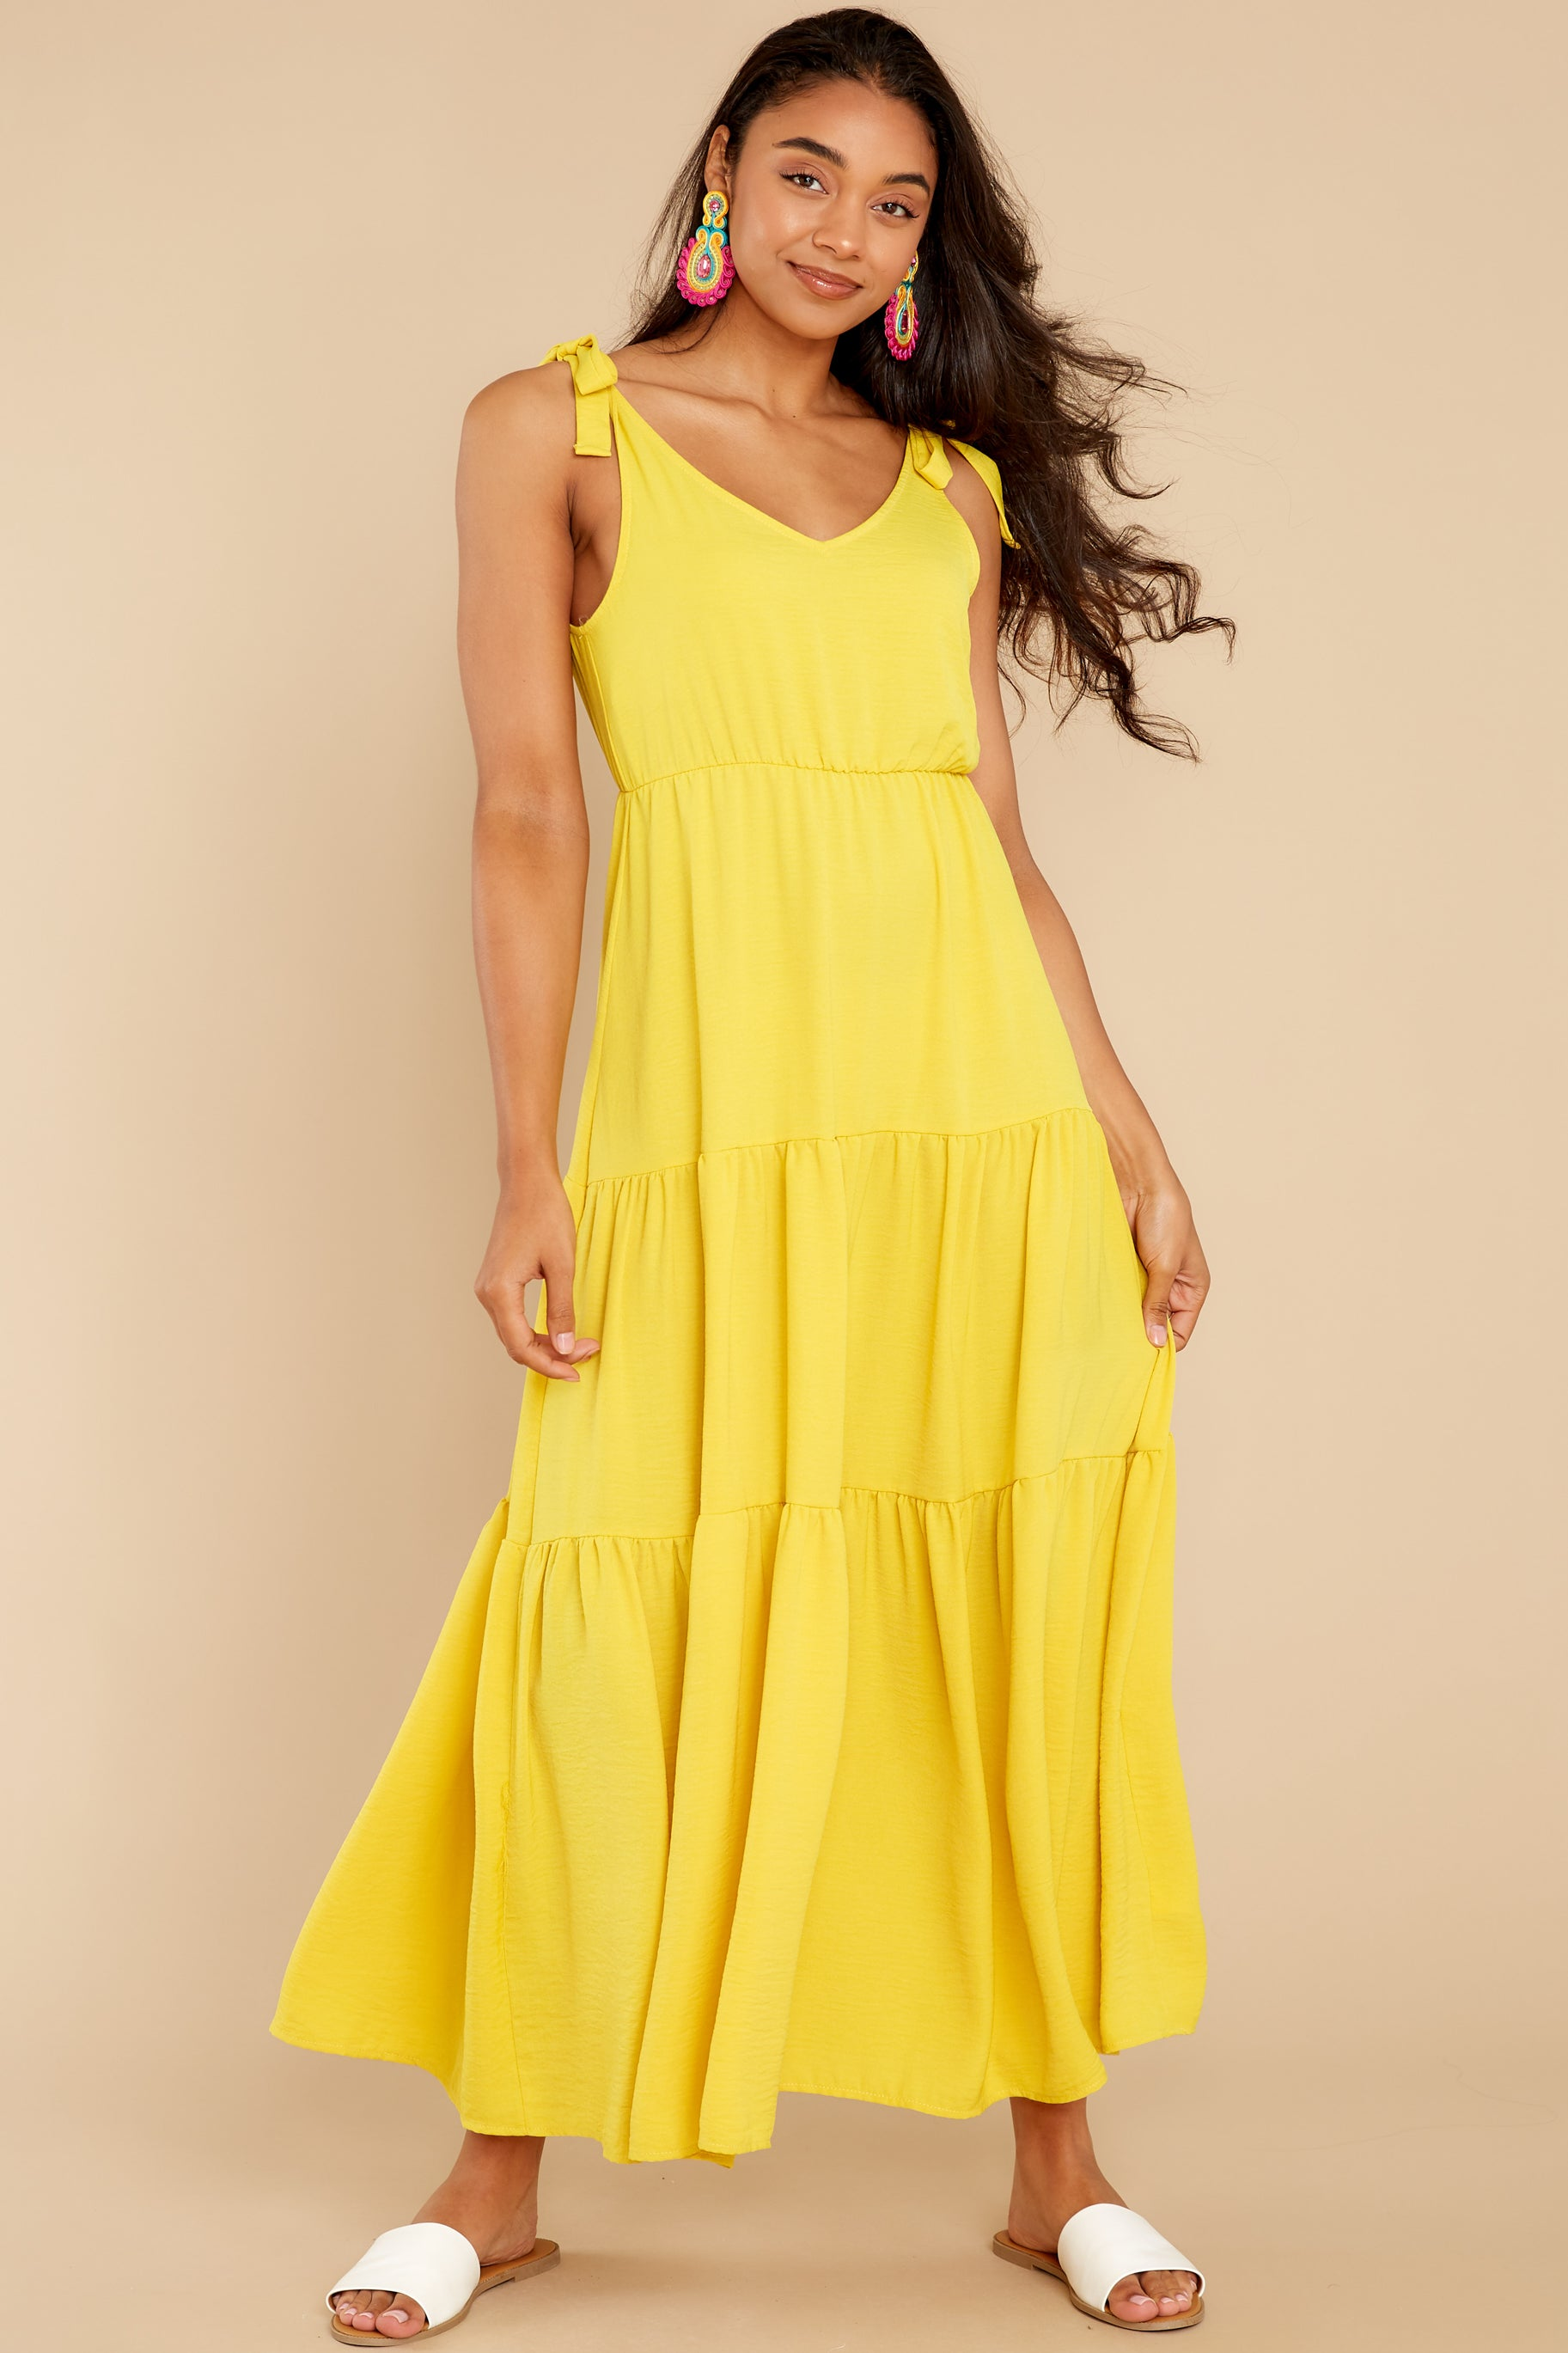 2 Right Kind Of Attention Yellow Maxi Dress at reddress.com